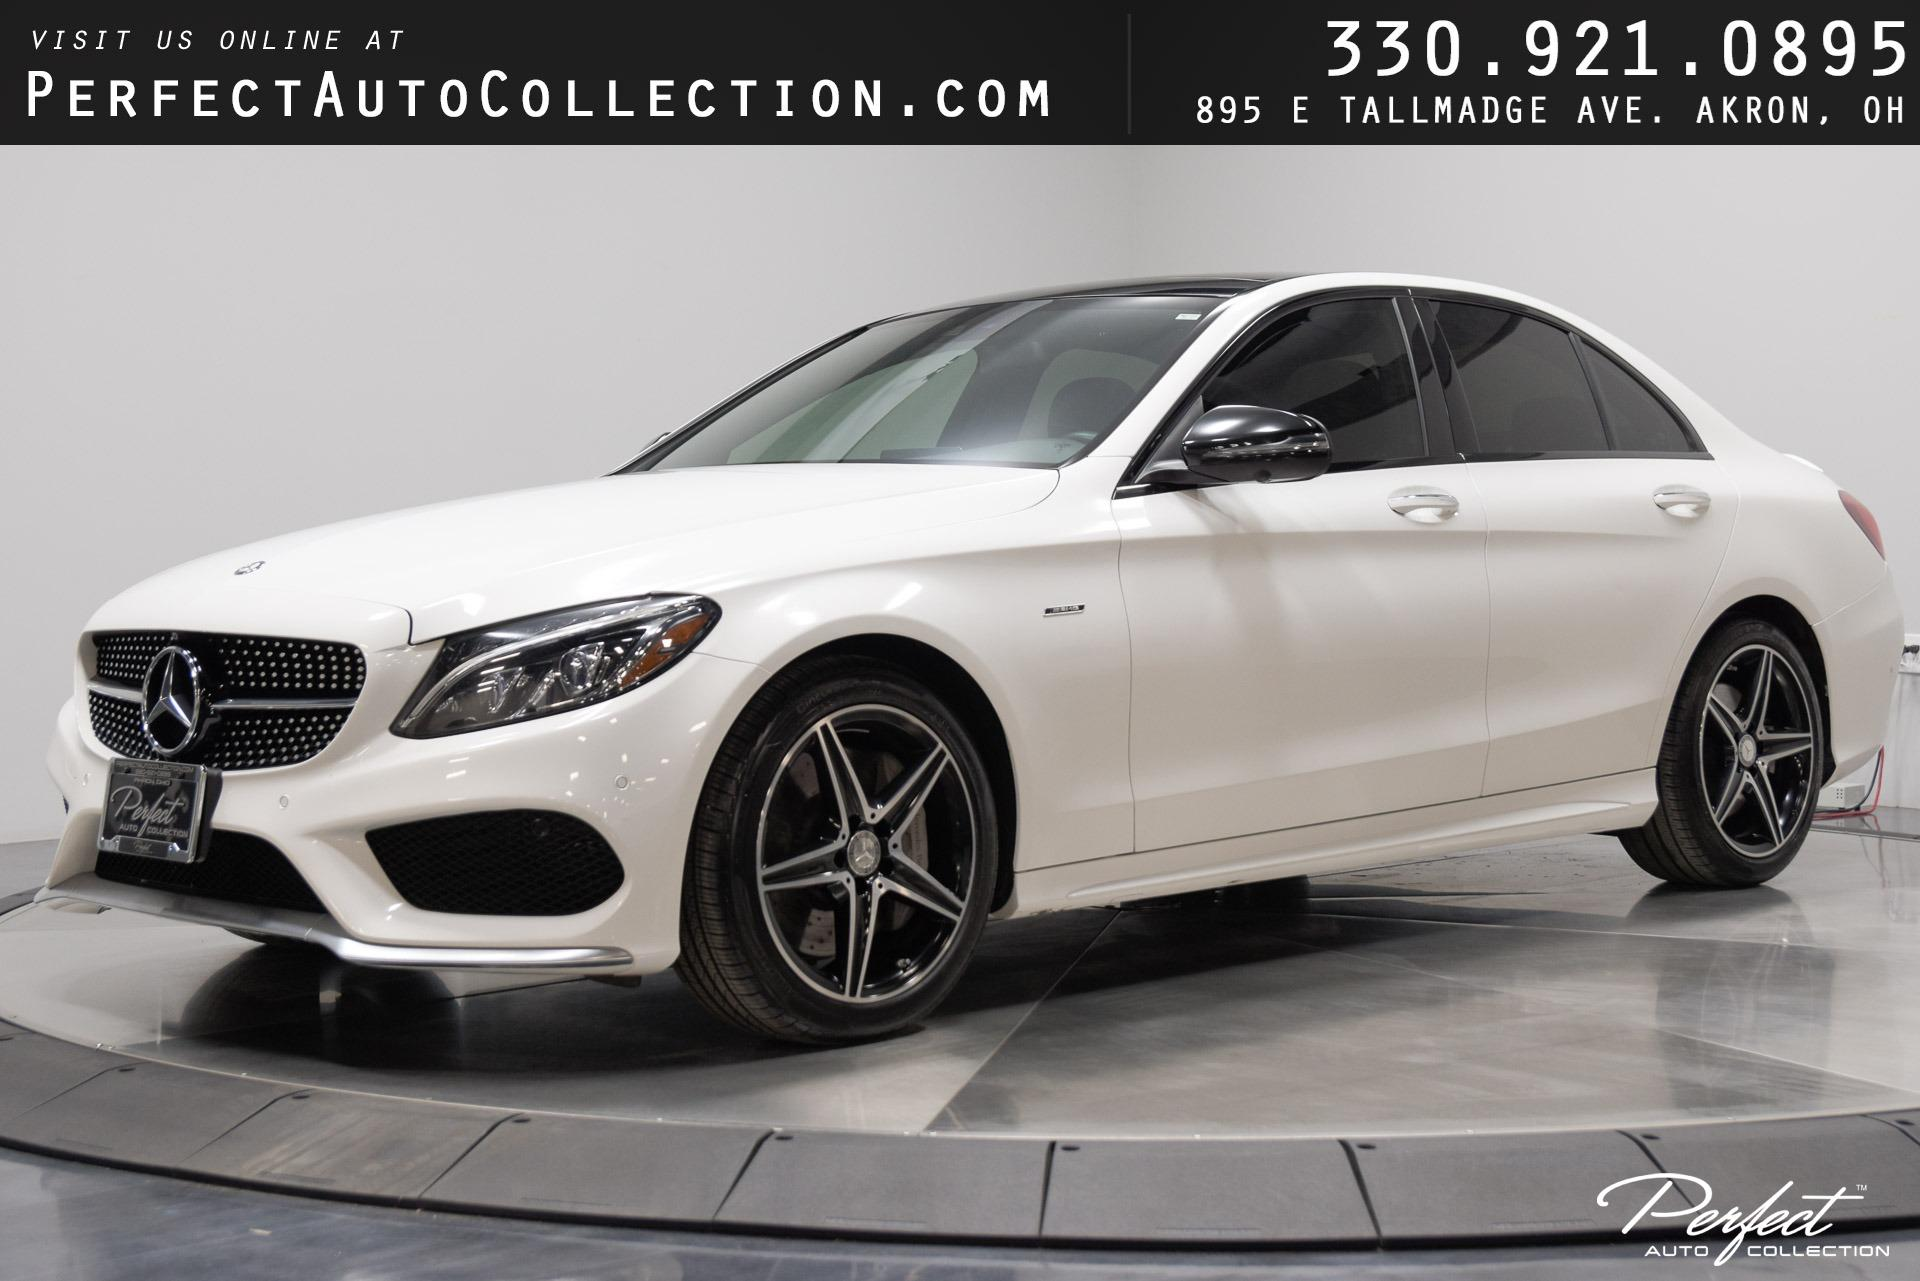 Used 2016 Mercedes-Benz C-Class C 450 AMG for sale $33,895 at Perfect Auto Collection in Akron OH 44310 1